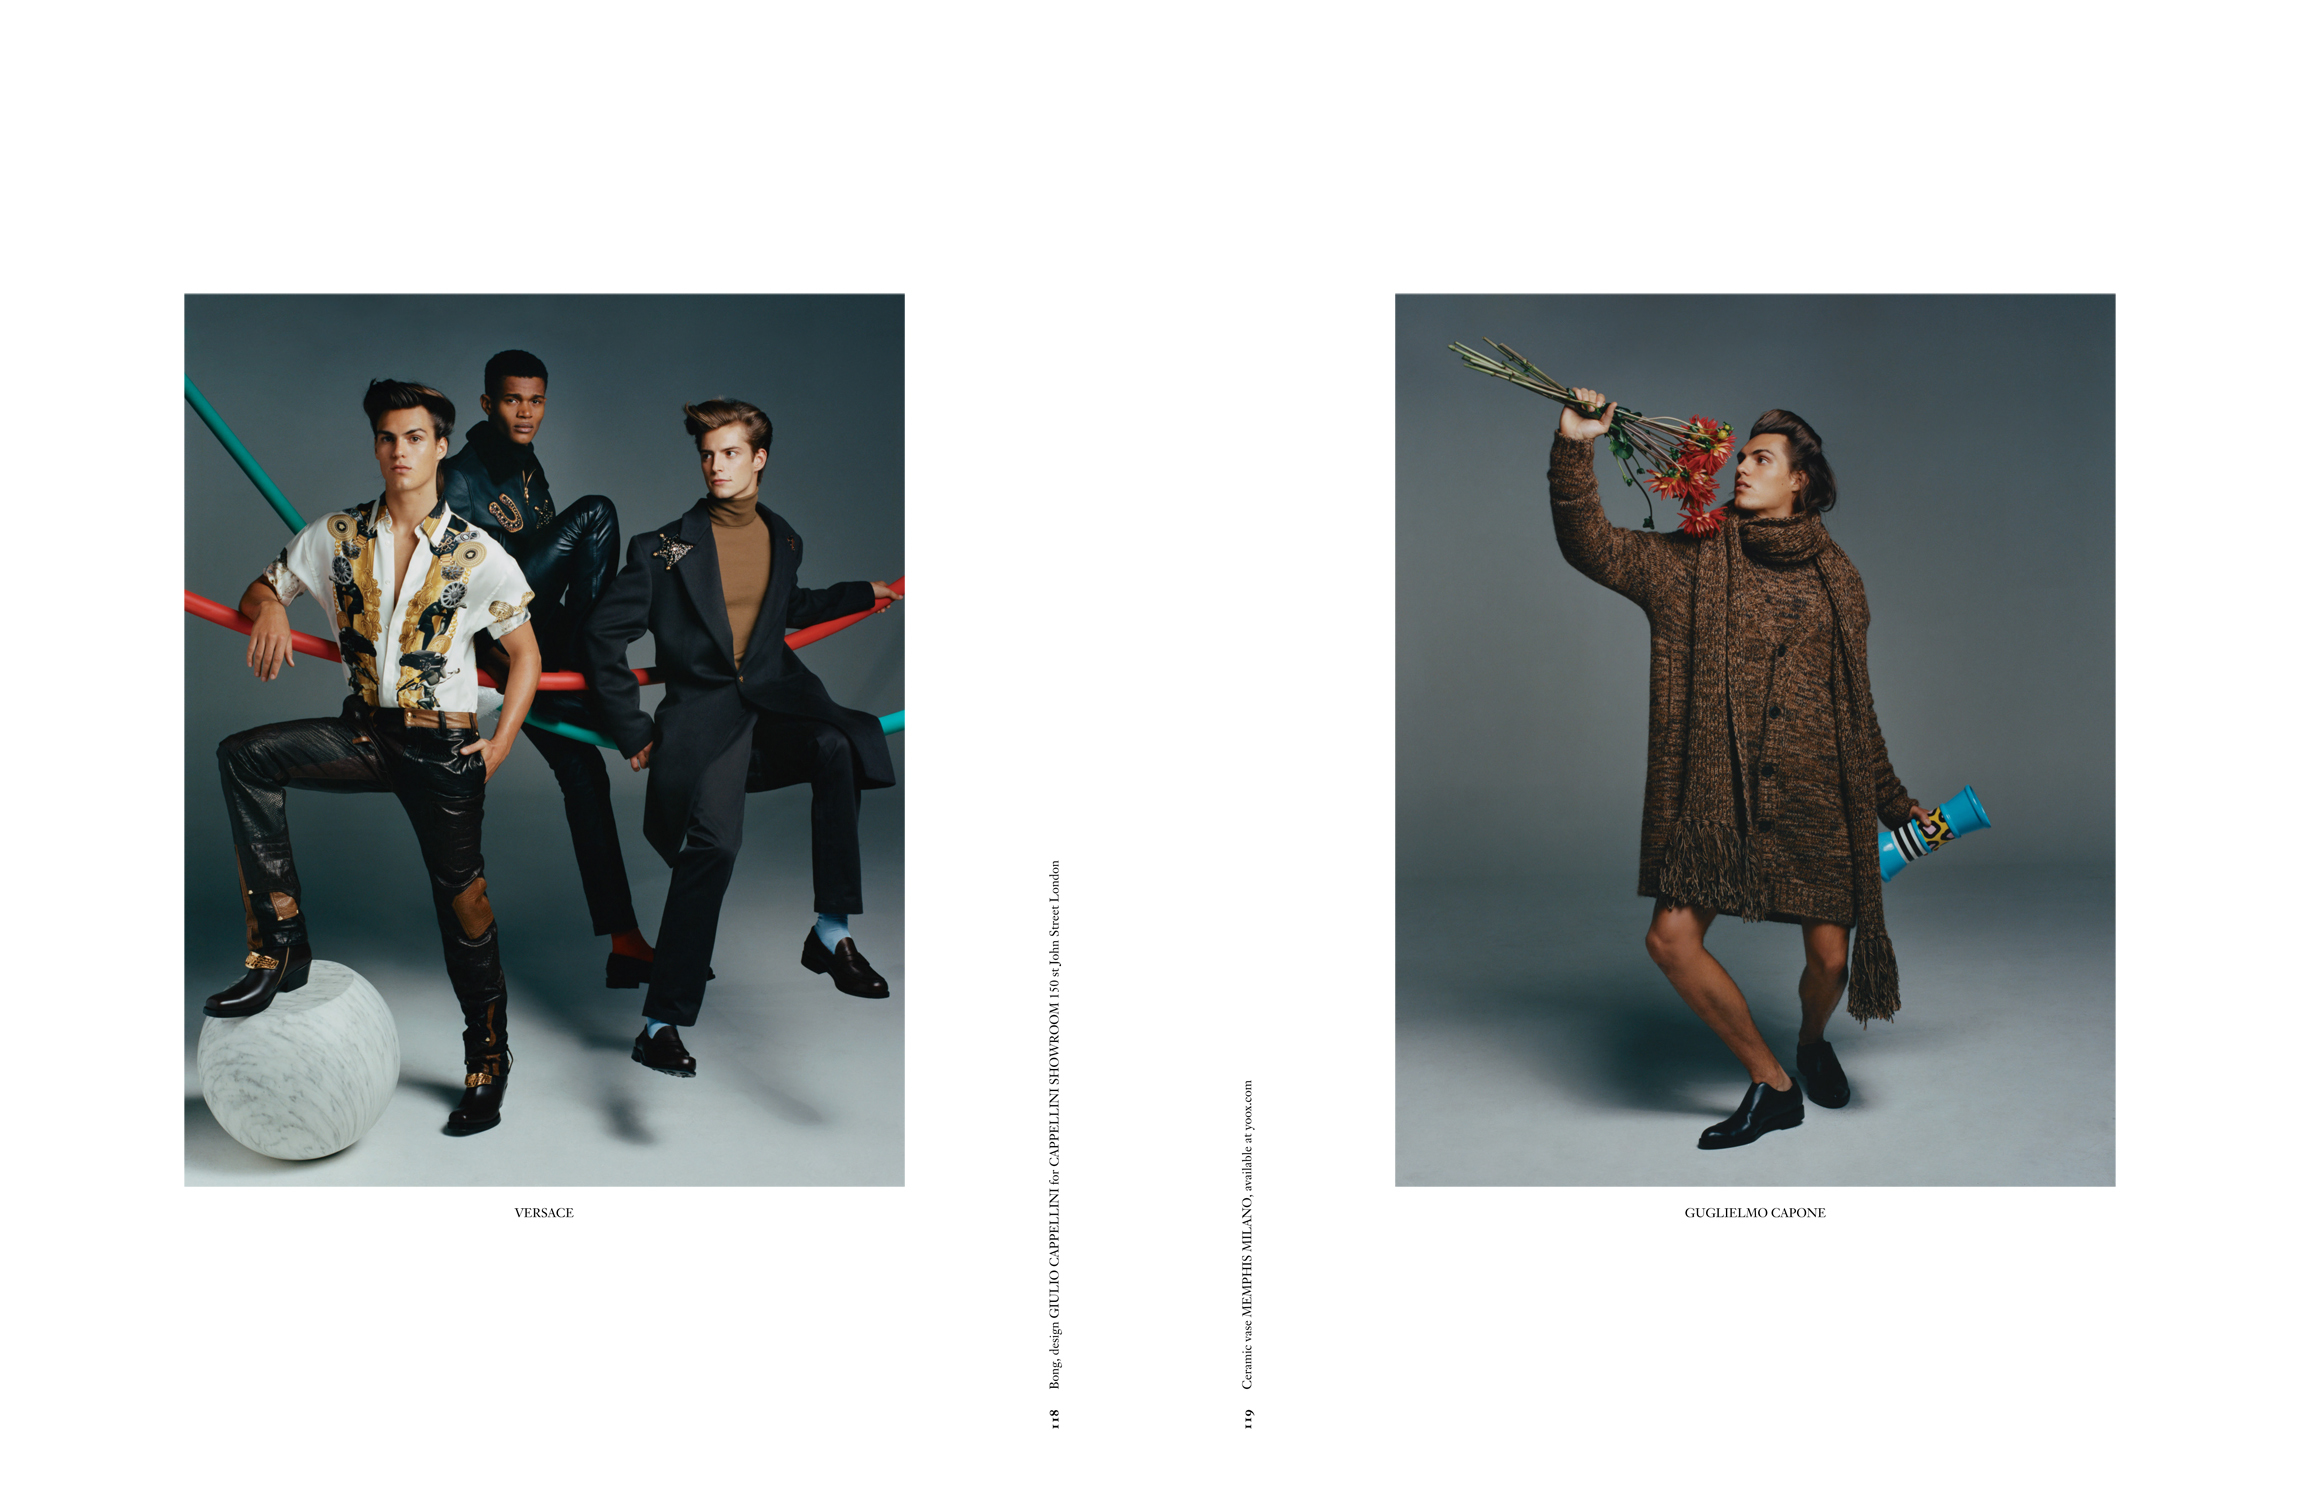 ARENA HOMME + - OLIVER HADLEE PEARCH